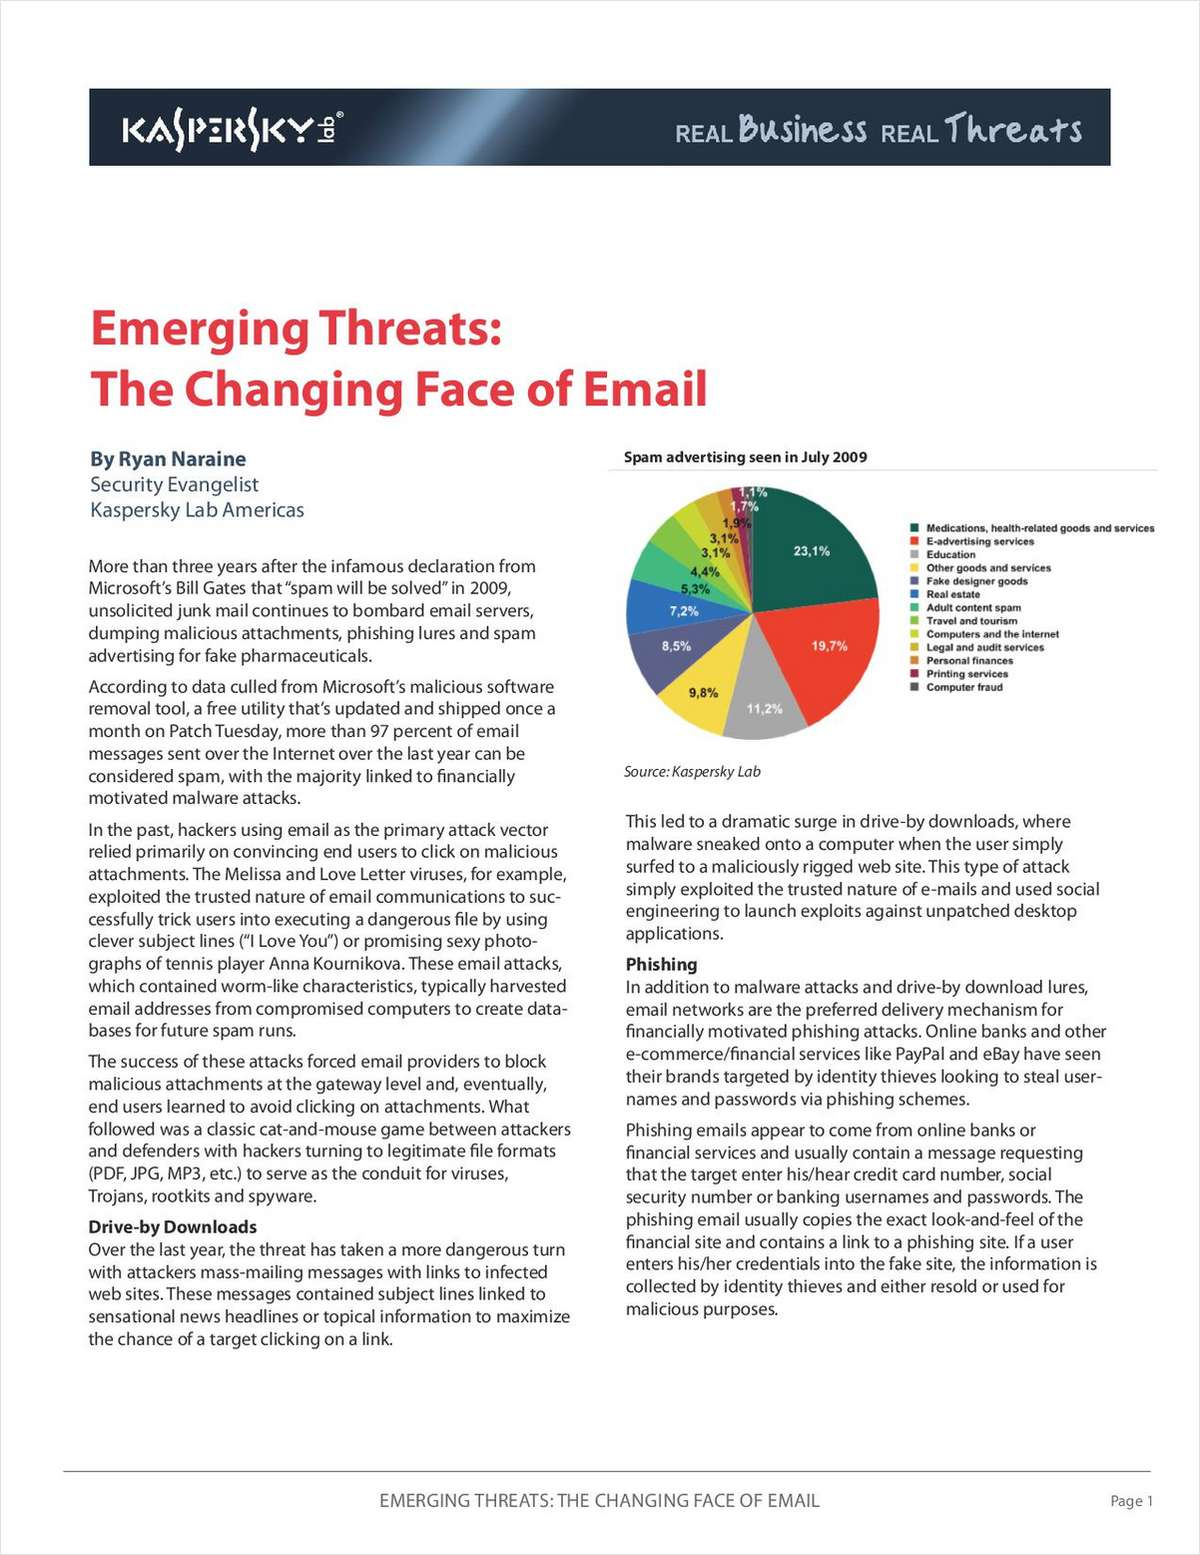 Emerging Threats: The Changing Face of Email